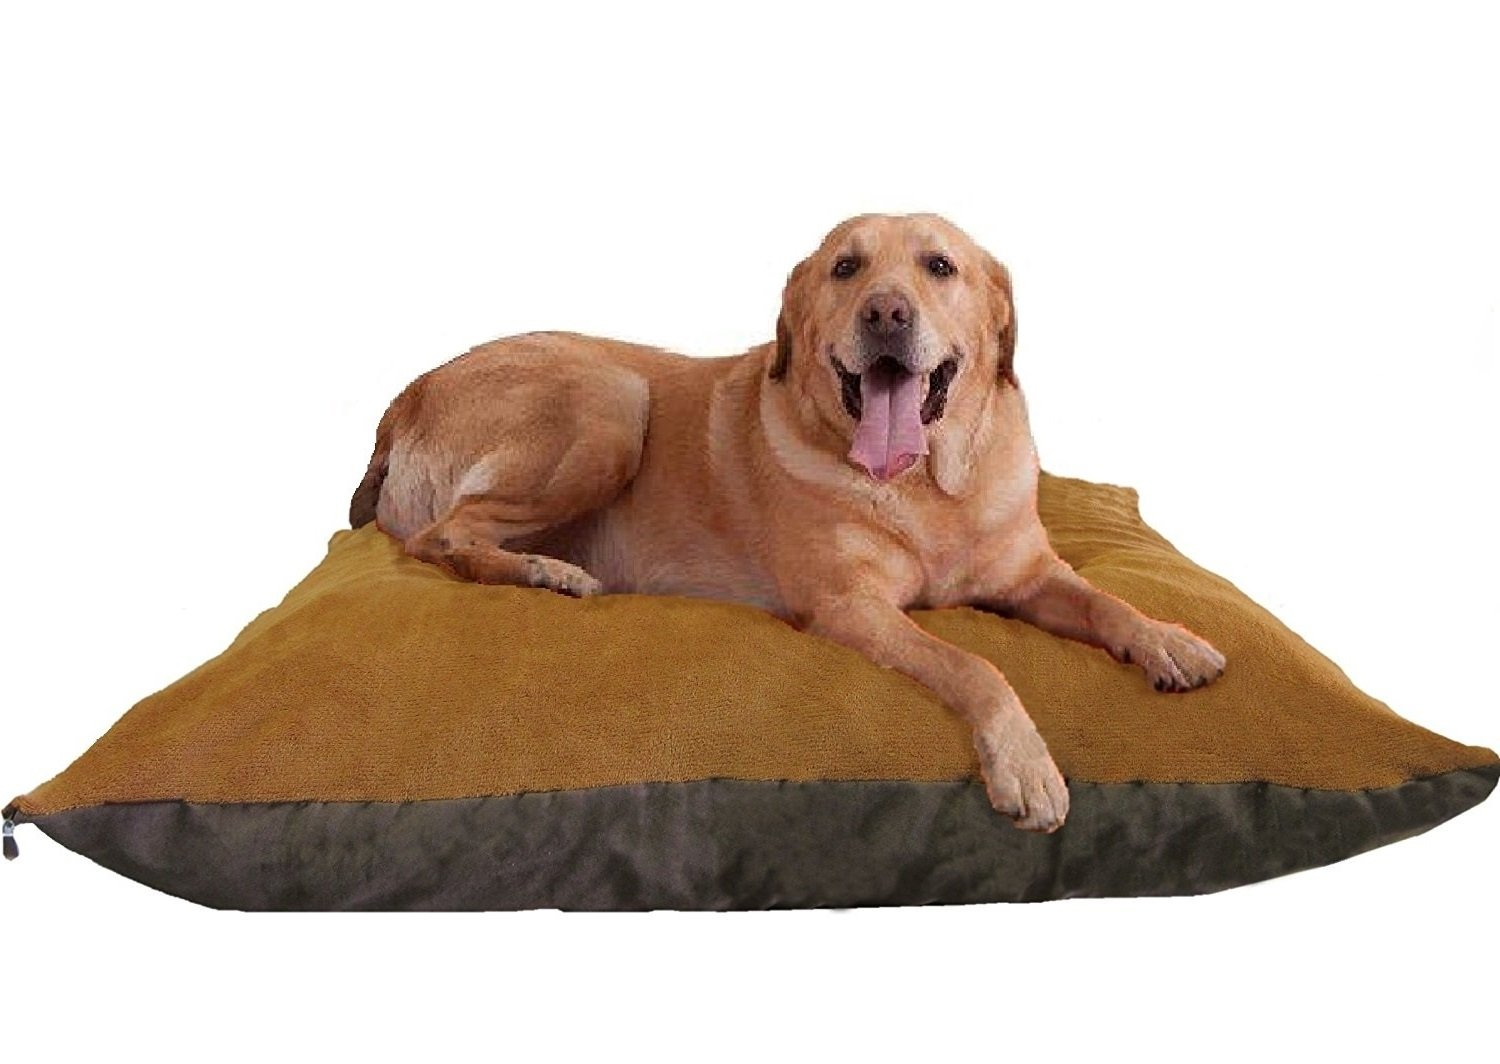 ehomegoods 54''X47'' XXXL Sudan Brown Jumbo Orthopedic Micro Cushion Memory Foam Pet Bed Pillow for XLarge dog with 2 external covers + Waterproof Internal cover